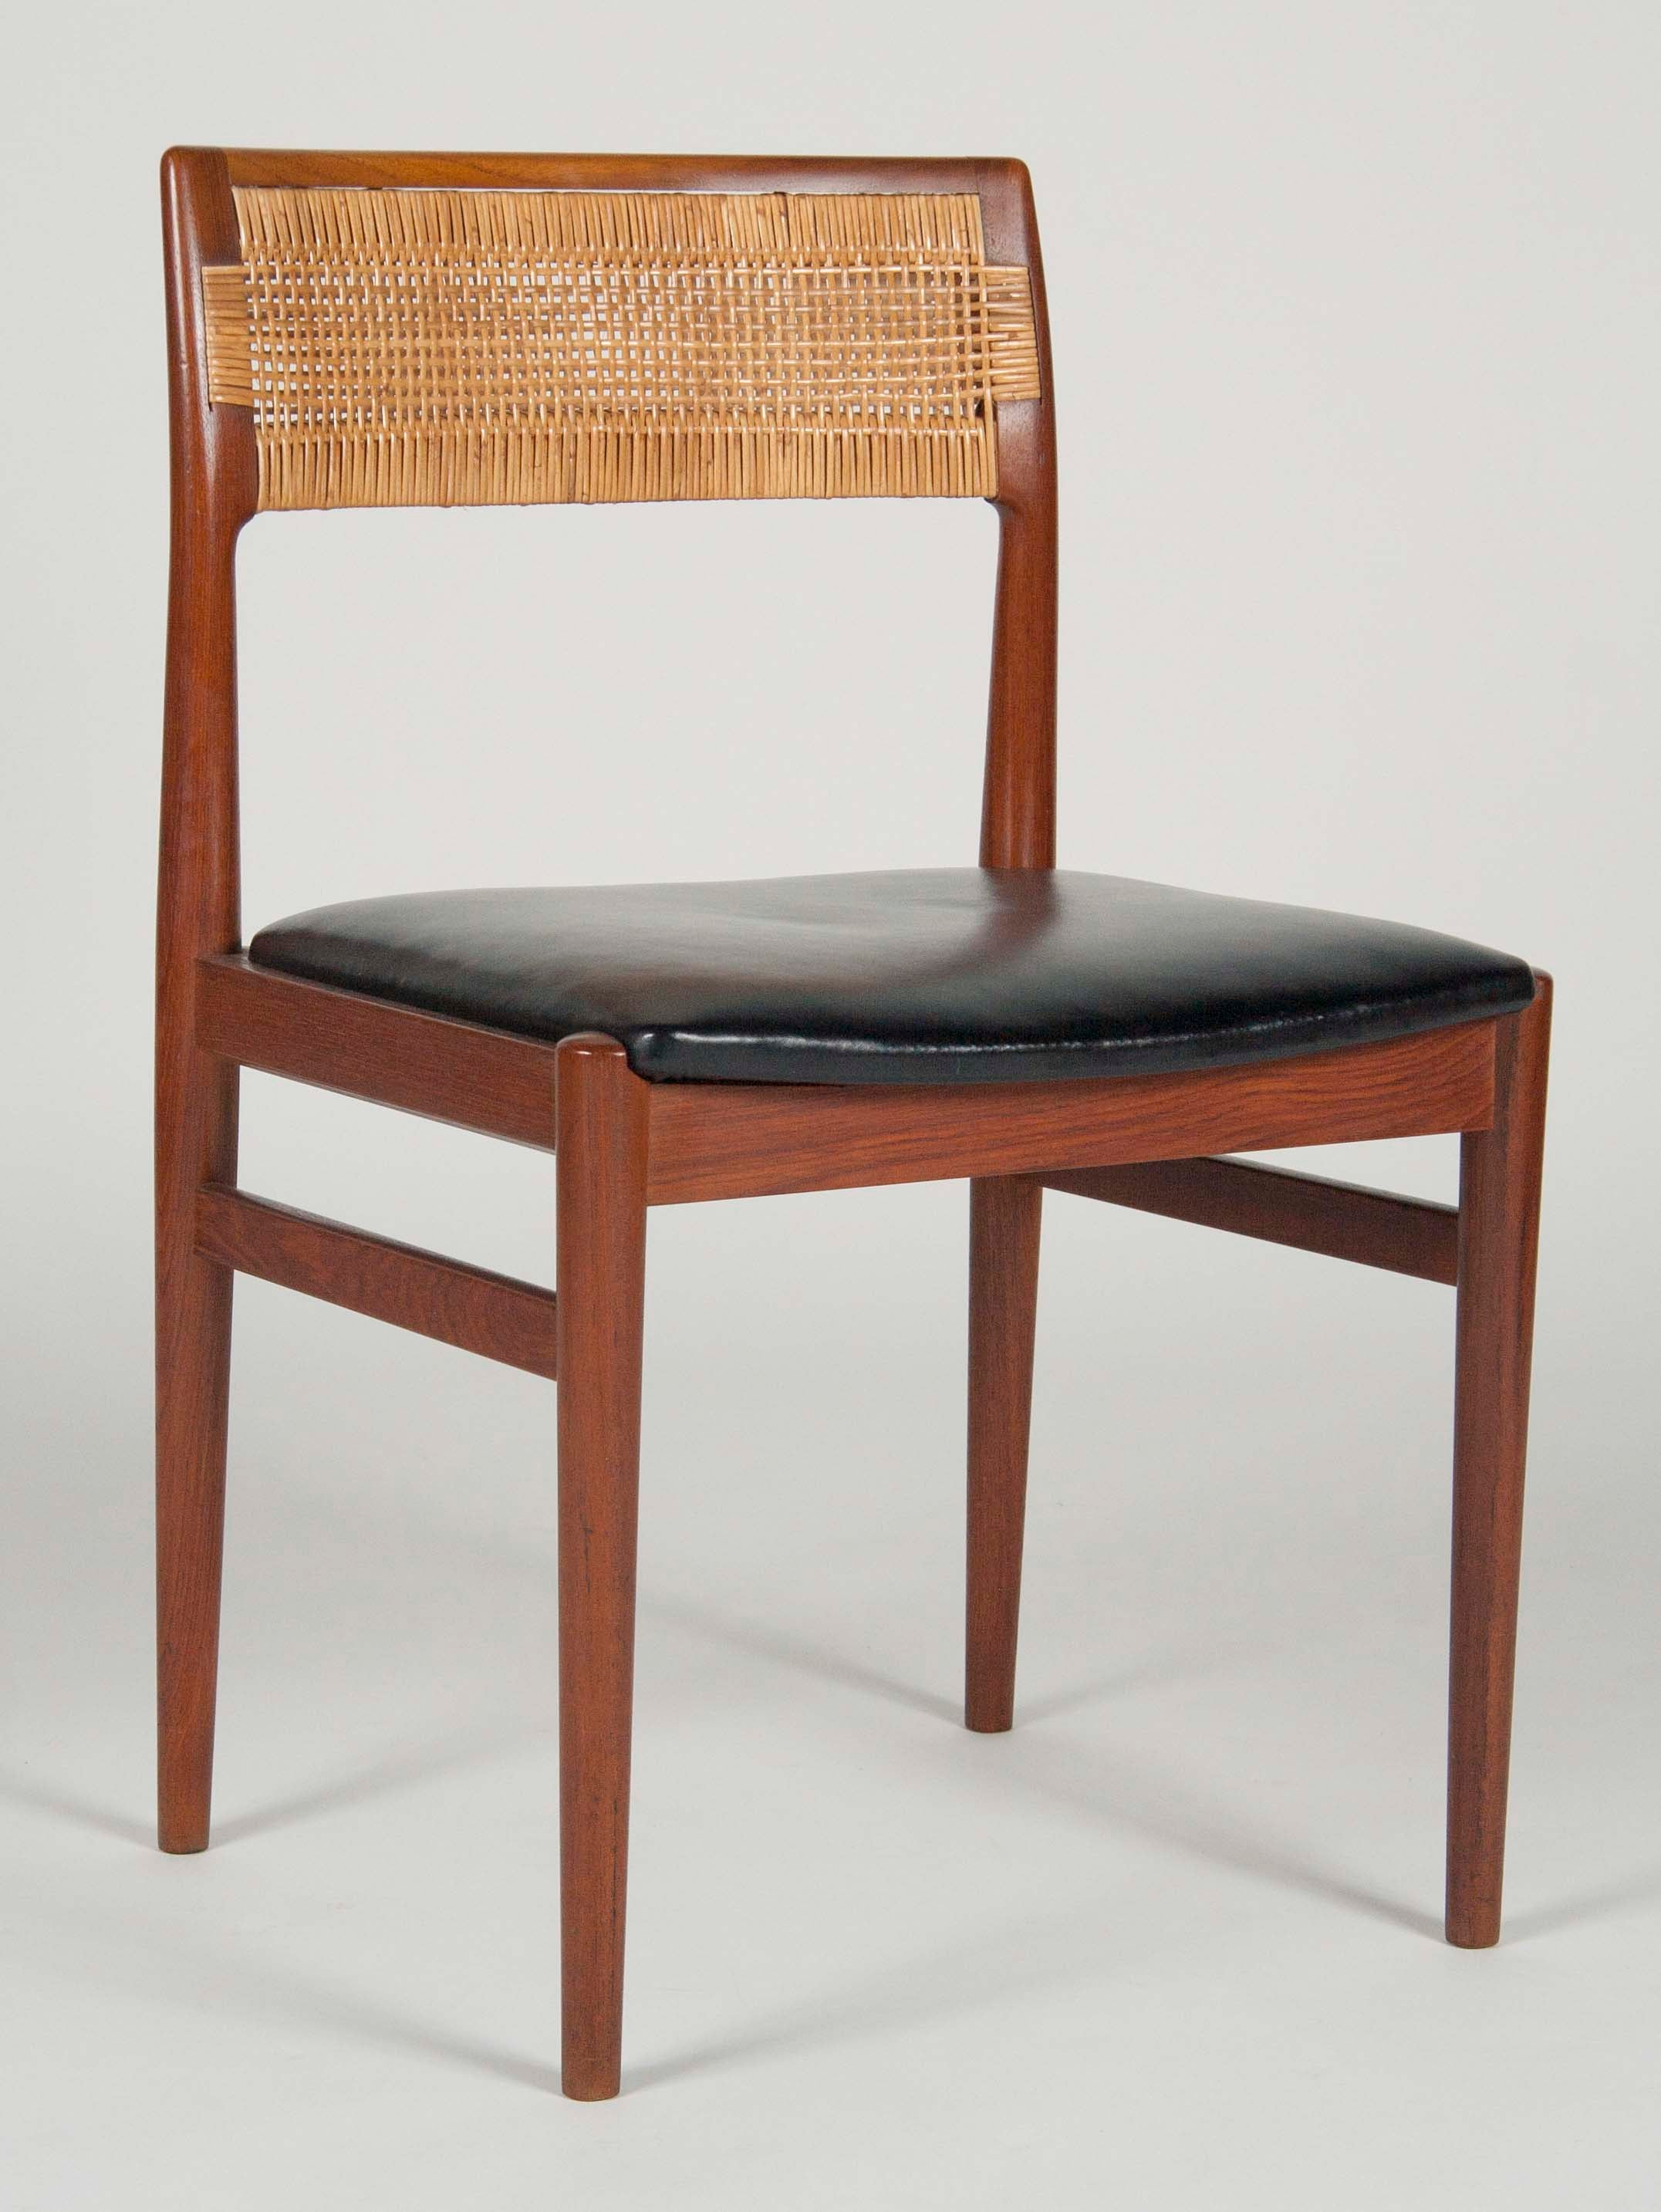 A Set of 4 Model W26 Teak Chairs designed by Erik Worts